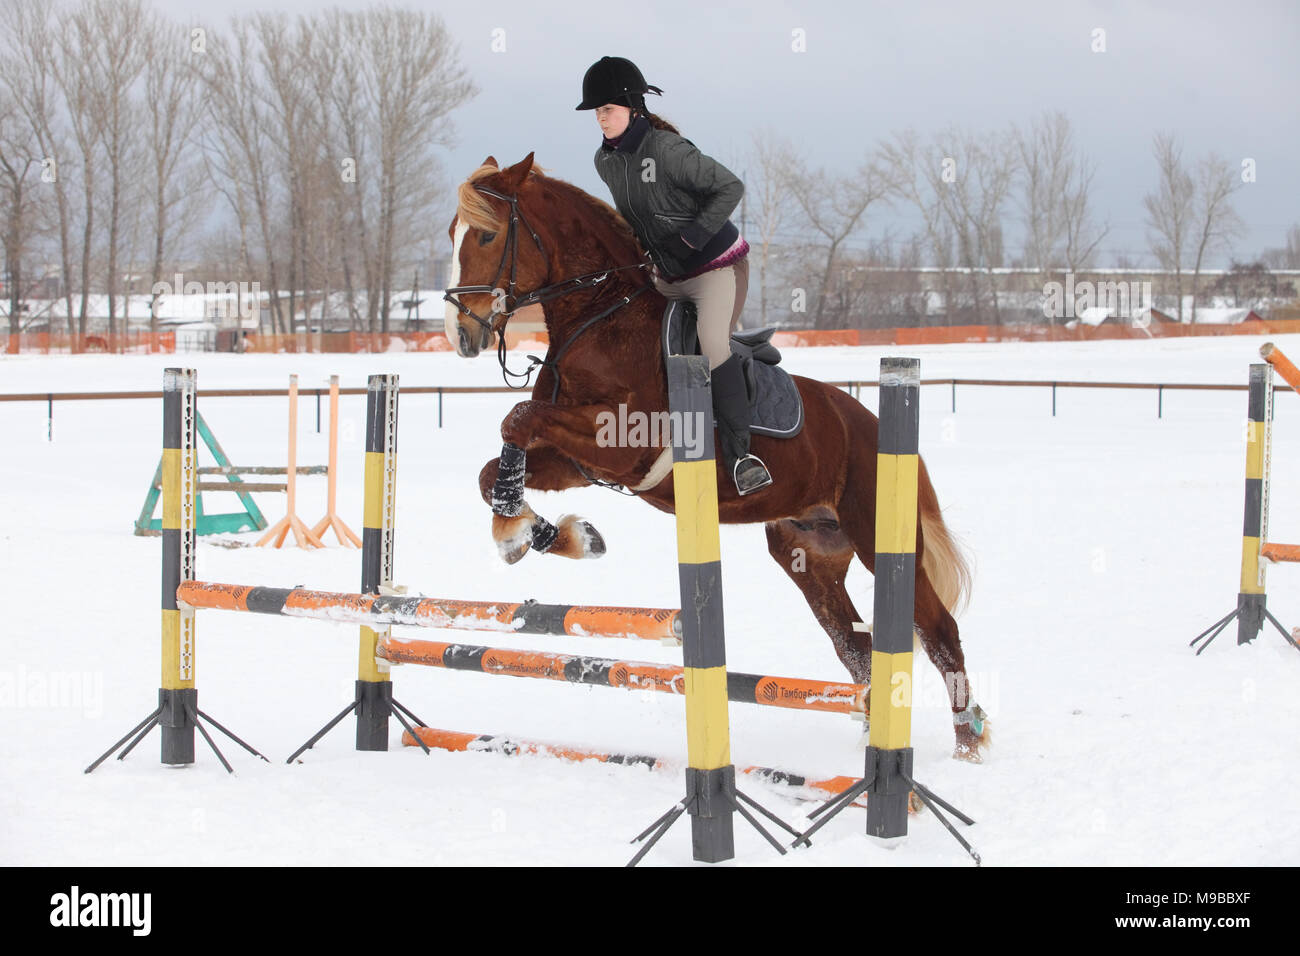 A girl on a horse jumps over the barrier. Training girl jockey riding a horse. A cloudy winter day - Stock Image